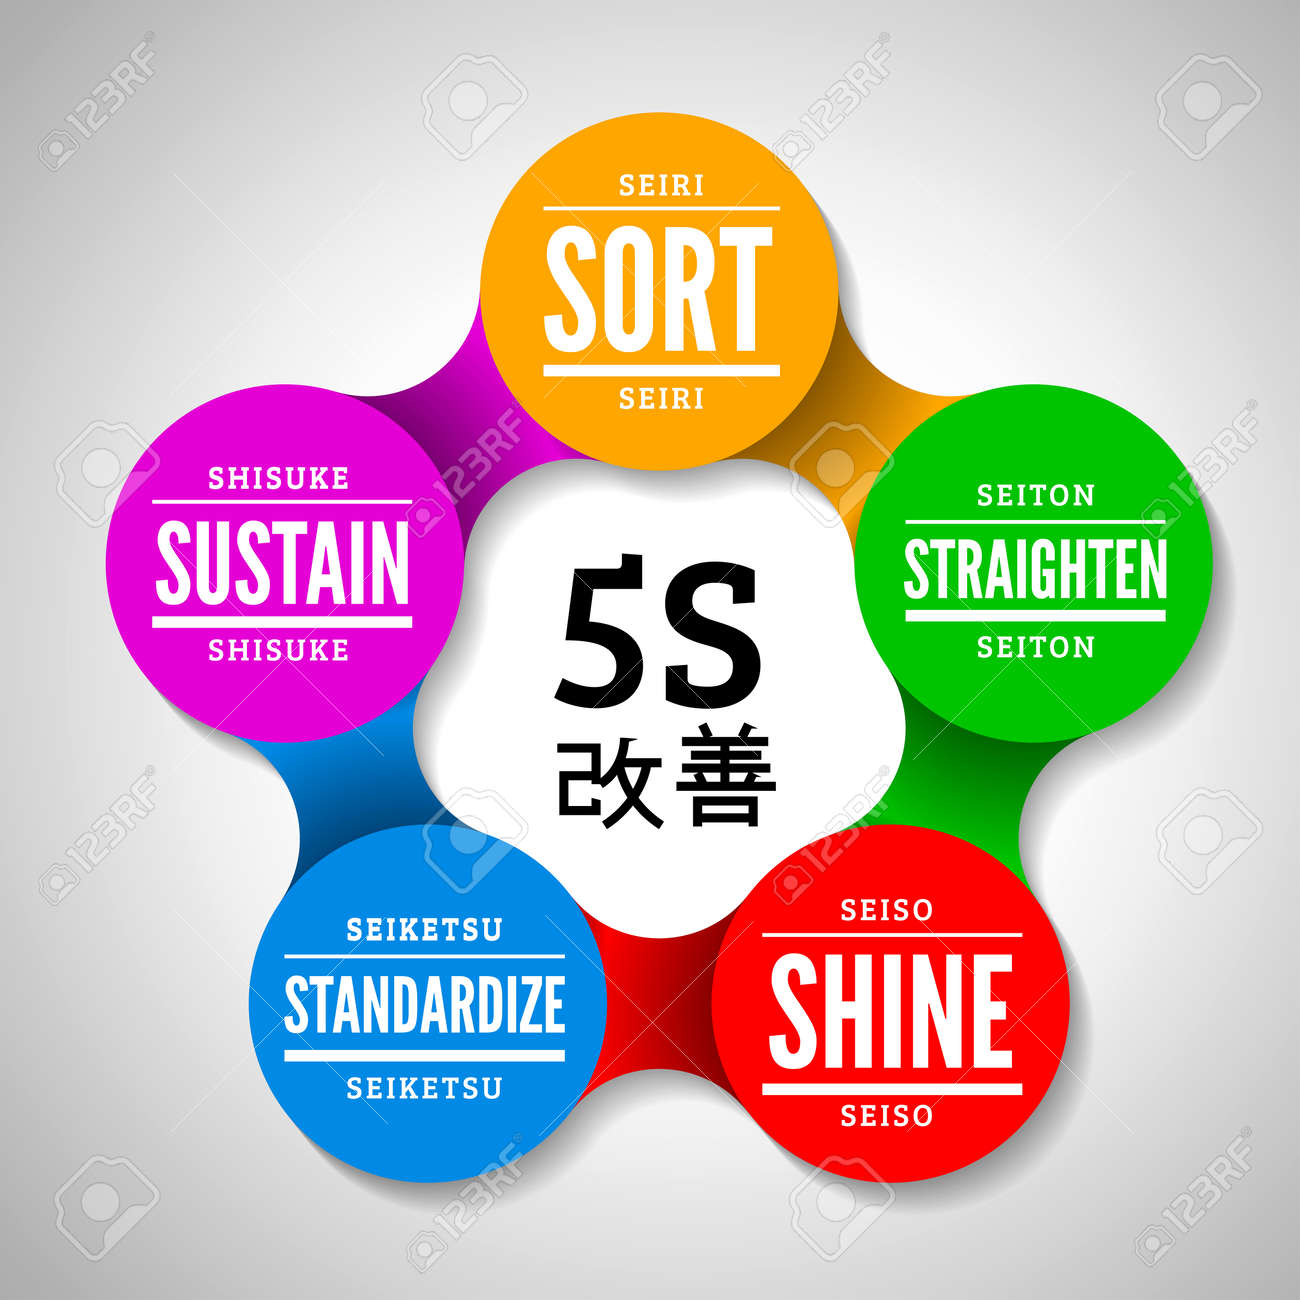 5s methodology kaizen management from japan royalty free cliparts